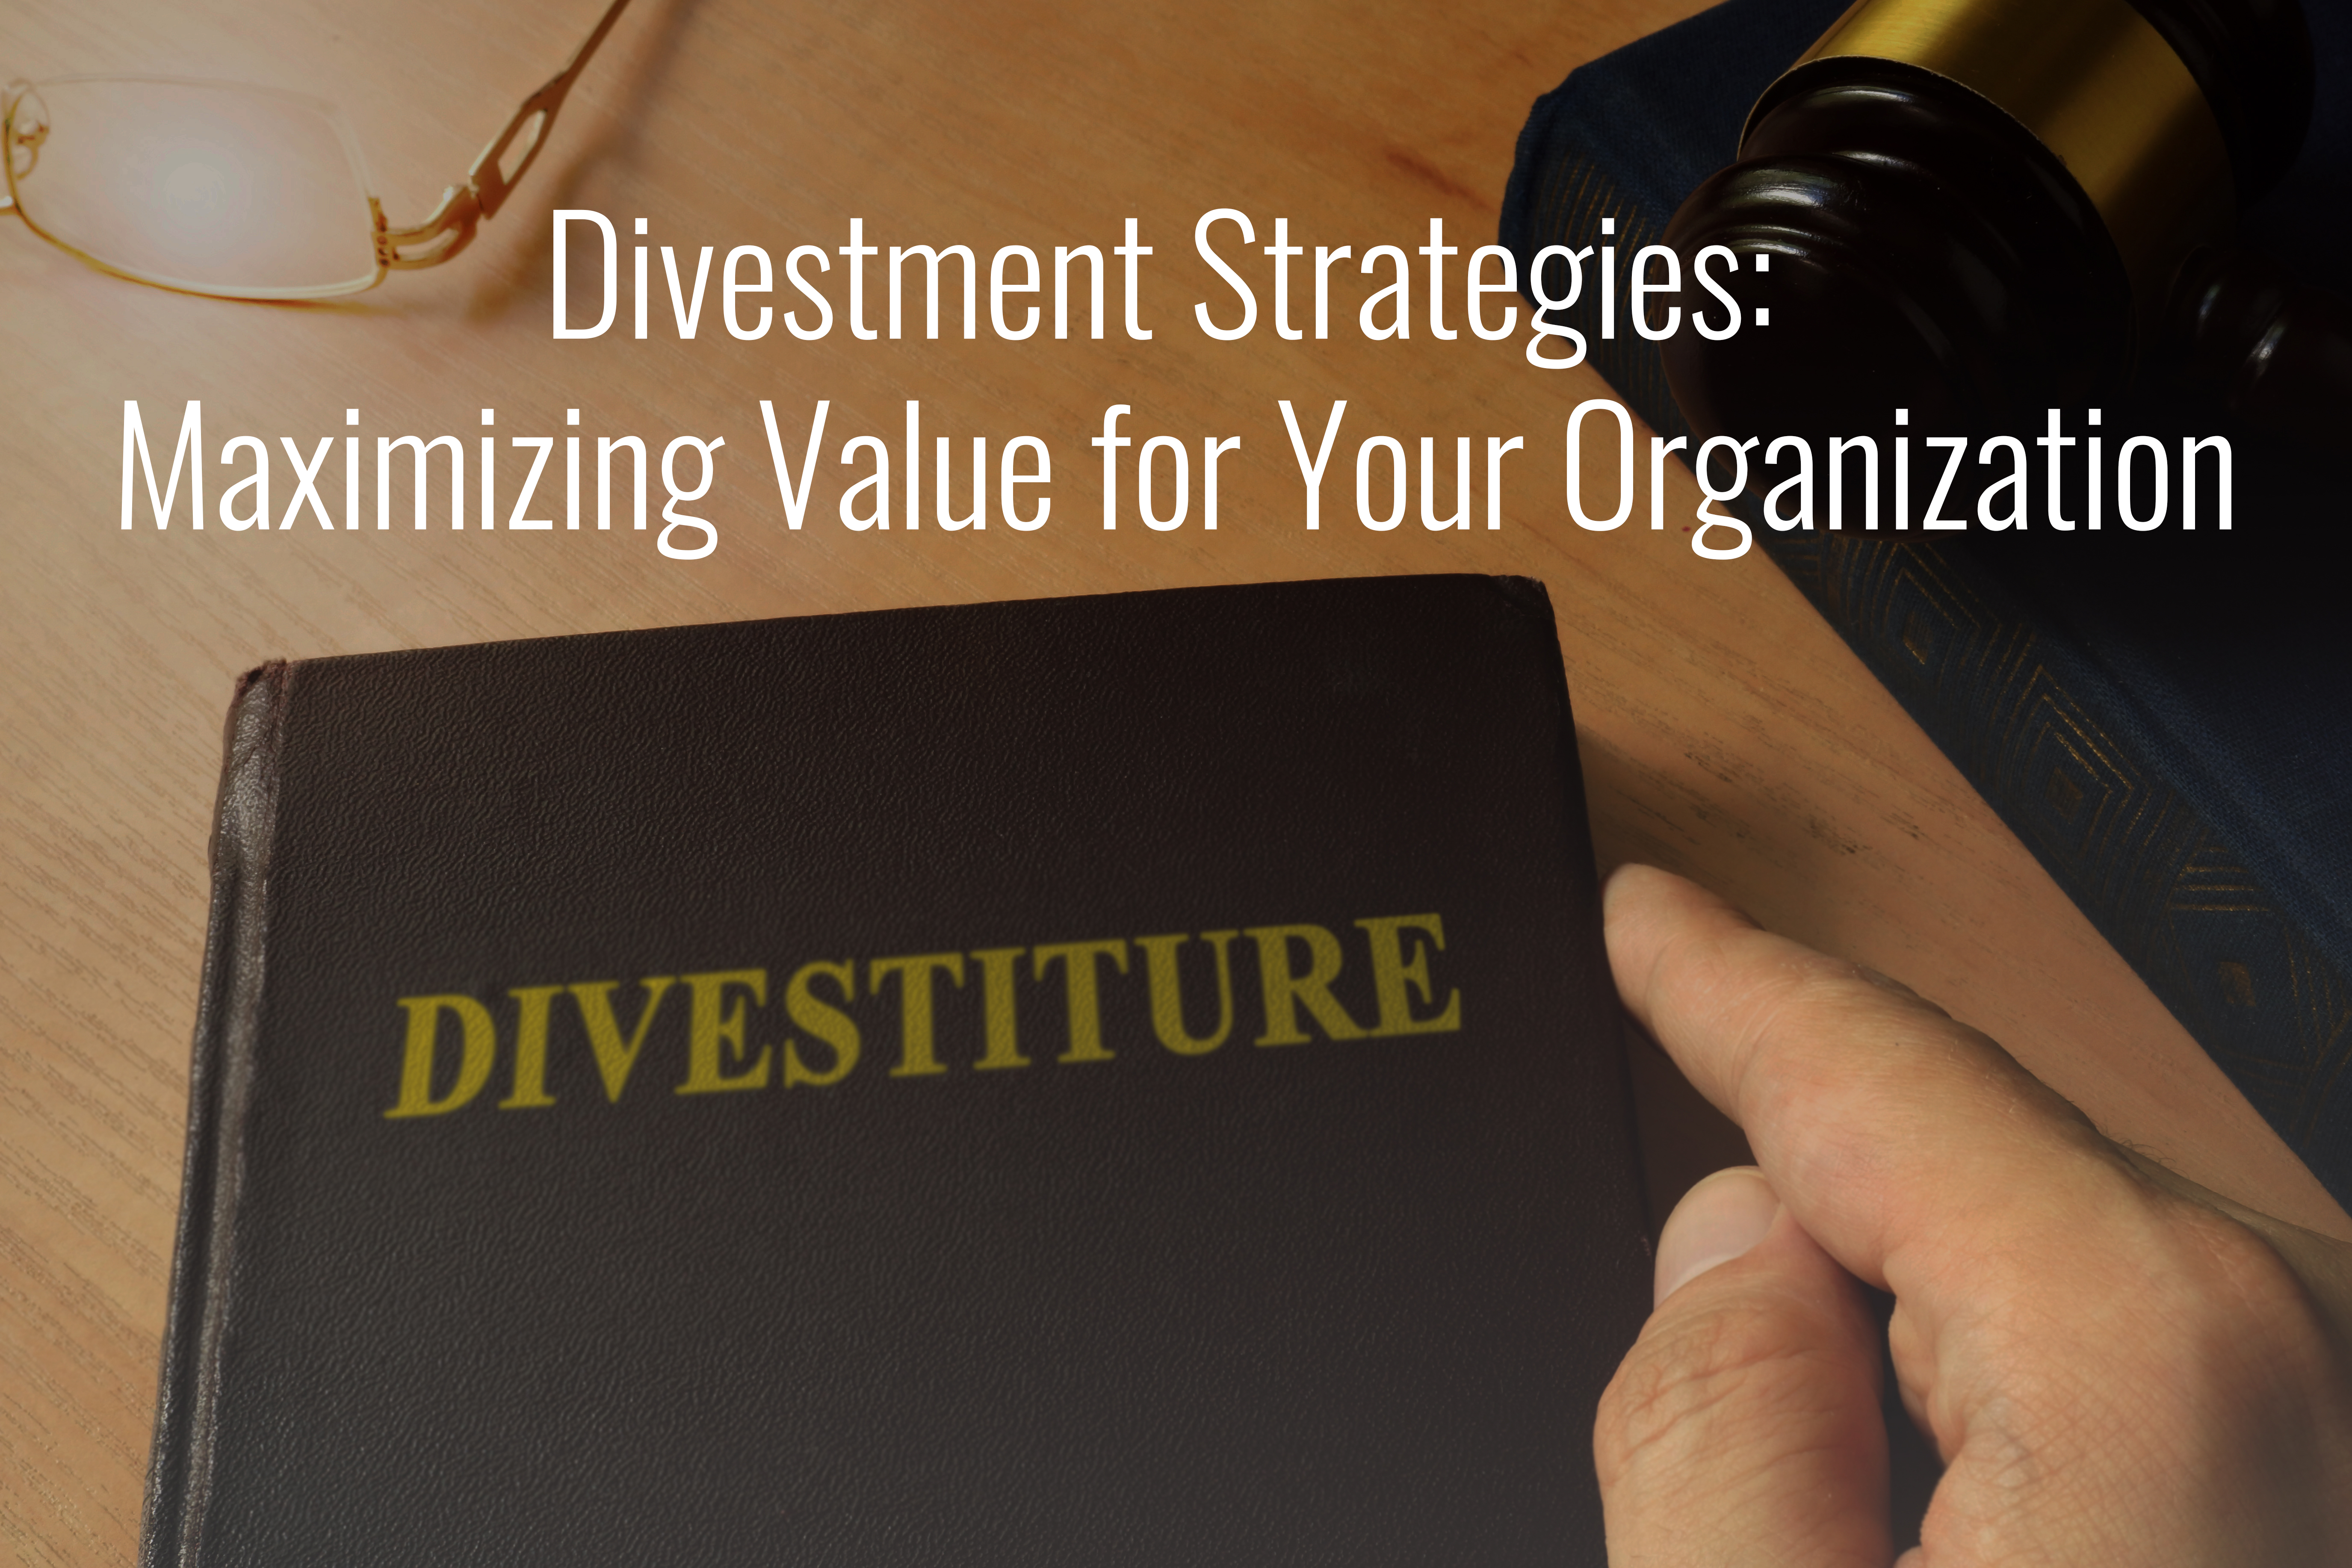 Divestment Strategies: Maximizing Value for Your Organization